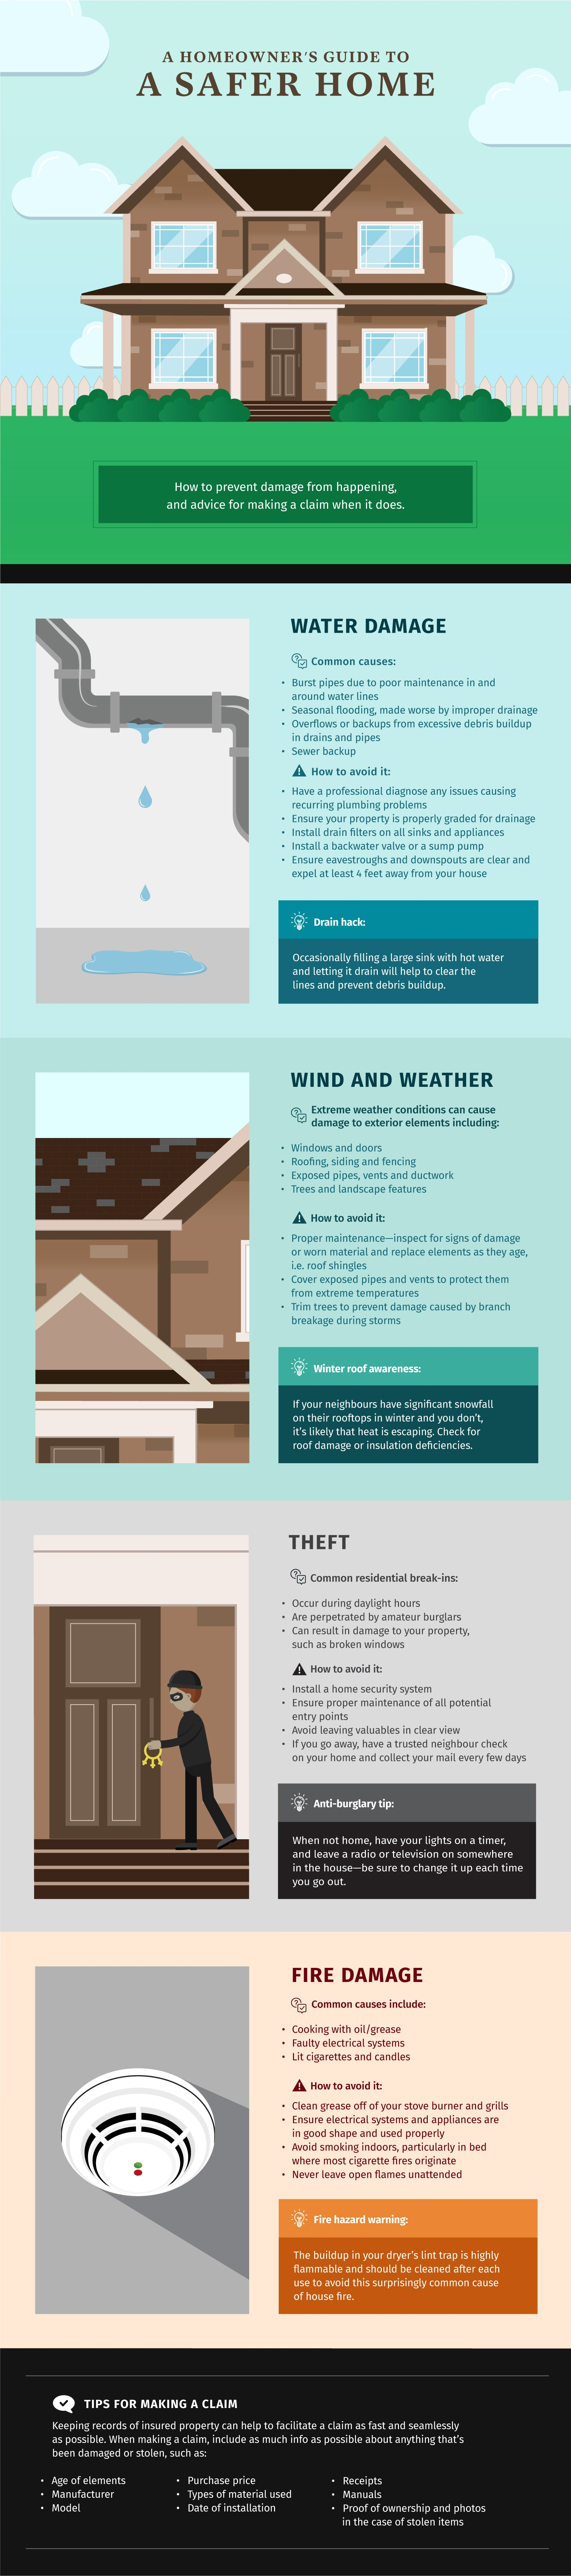 Infographic: A Homeowner's Guide to a Safer Home